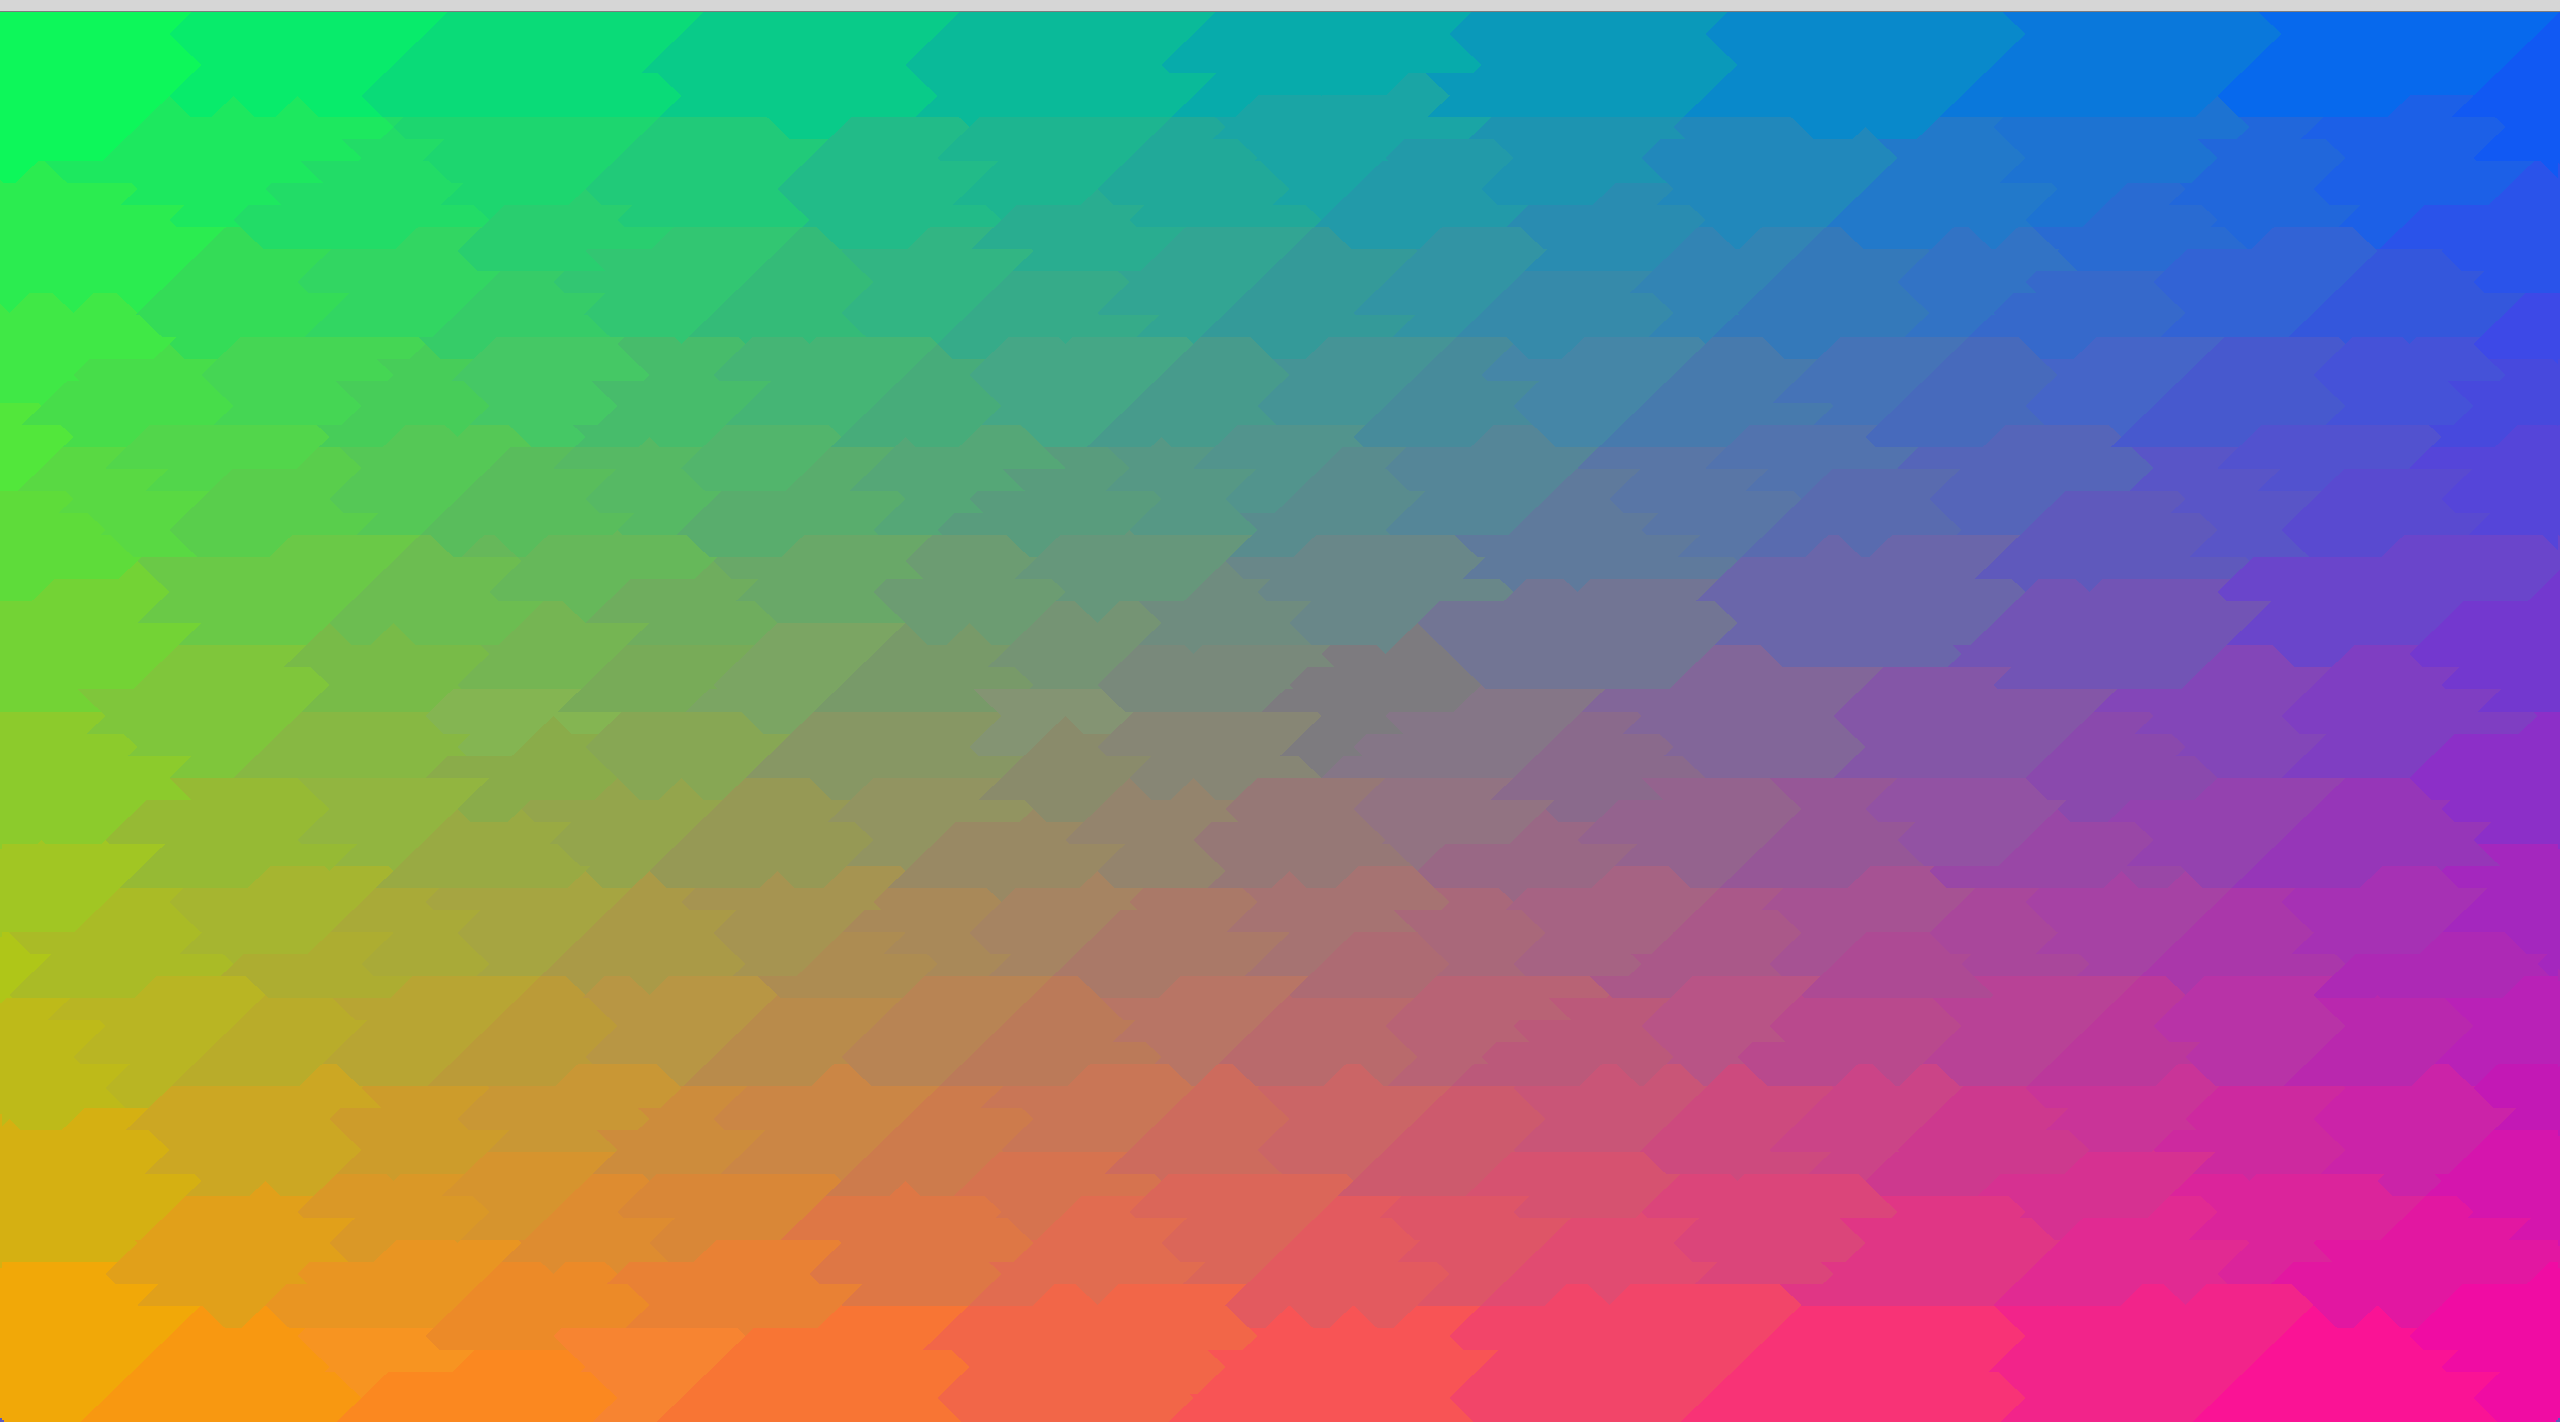 css gradients with background blend mode